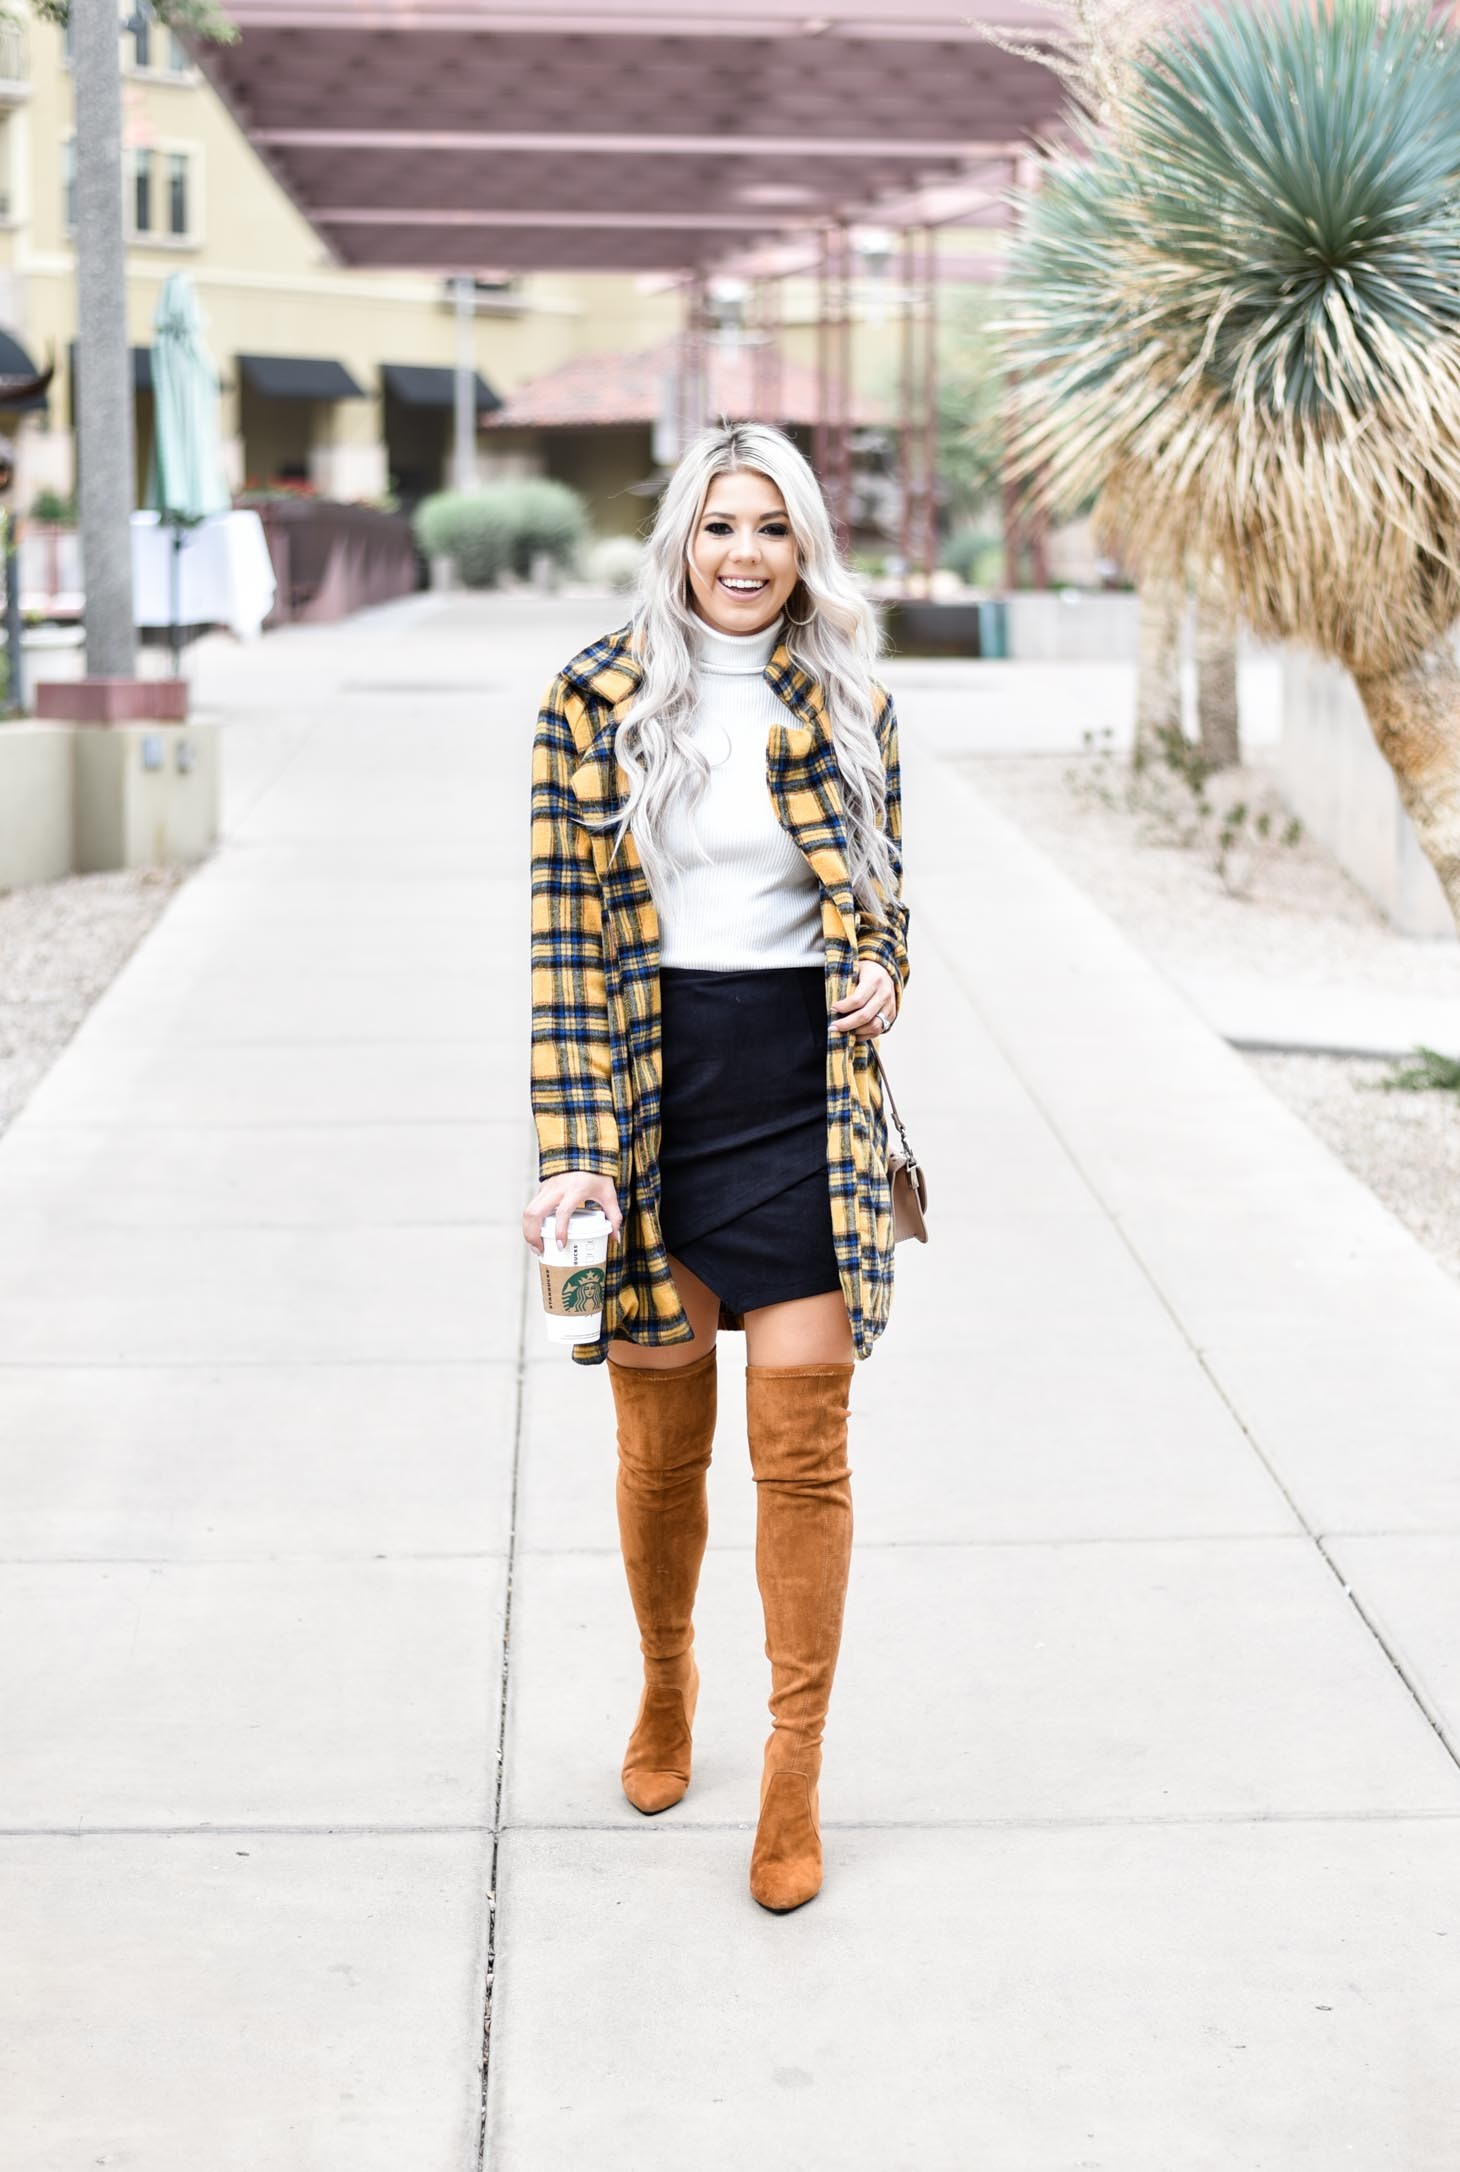 Erin Elizabeth of Wink and a Twirl shares this fabulous plaid coat from Shop Priceless